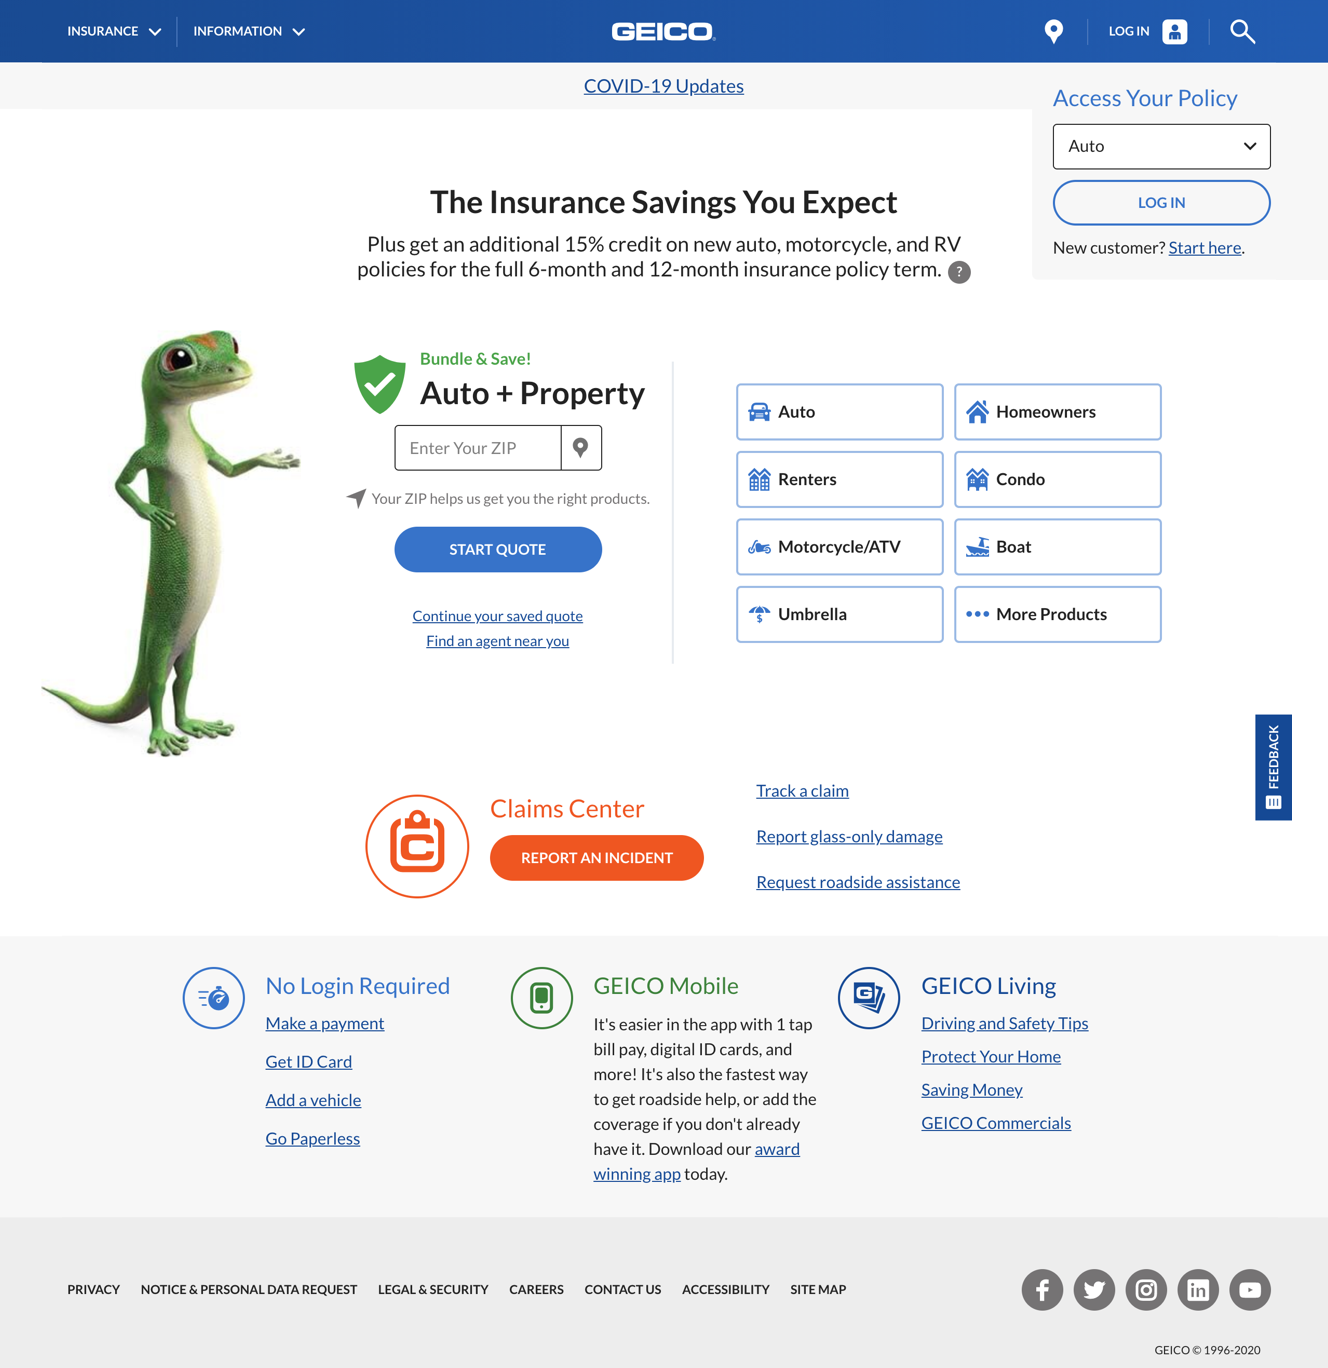 GEICO: More than just car insurance image